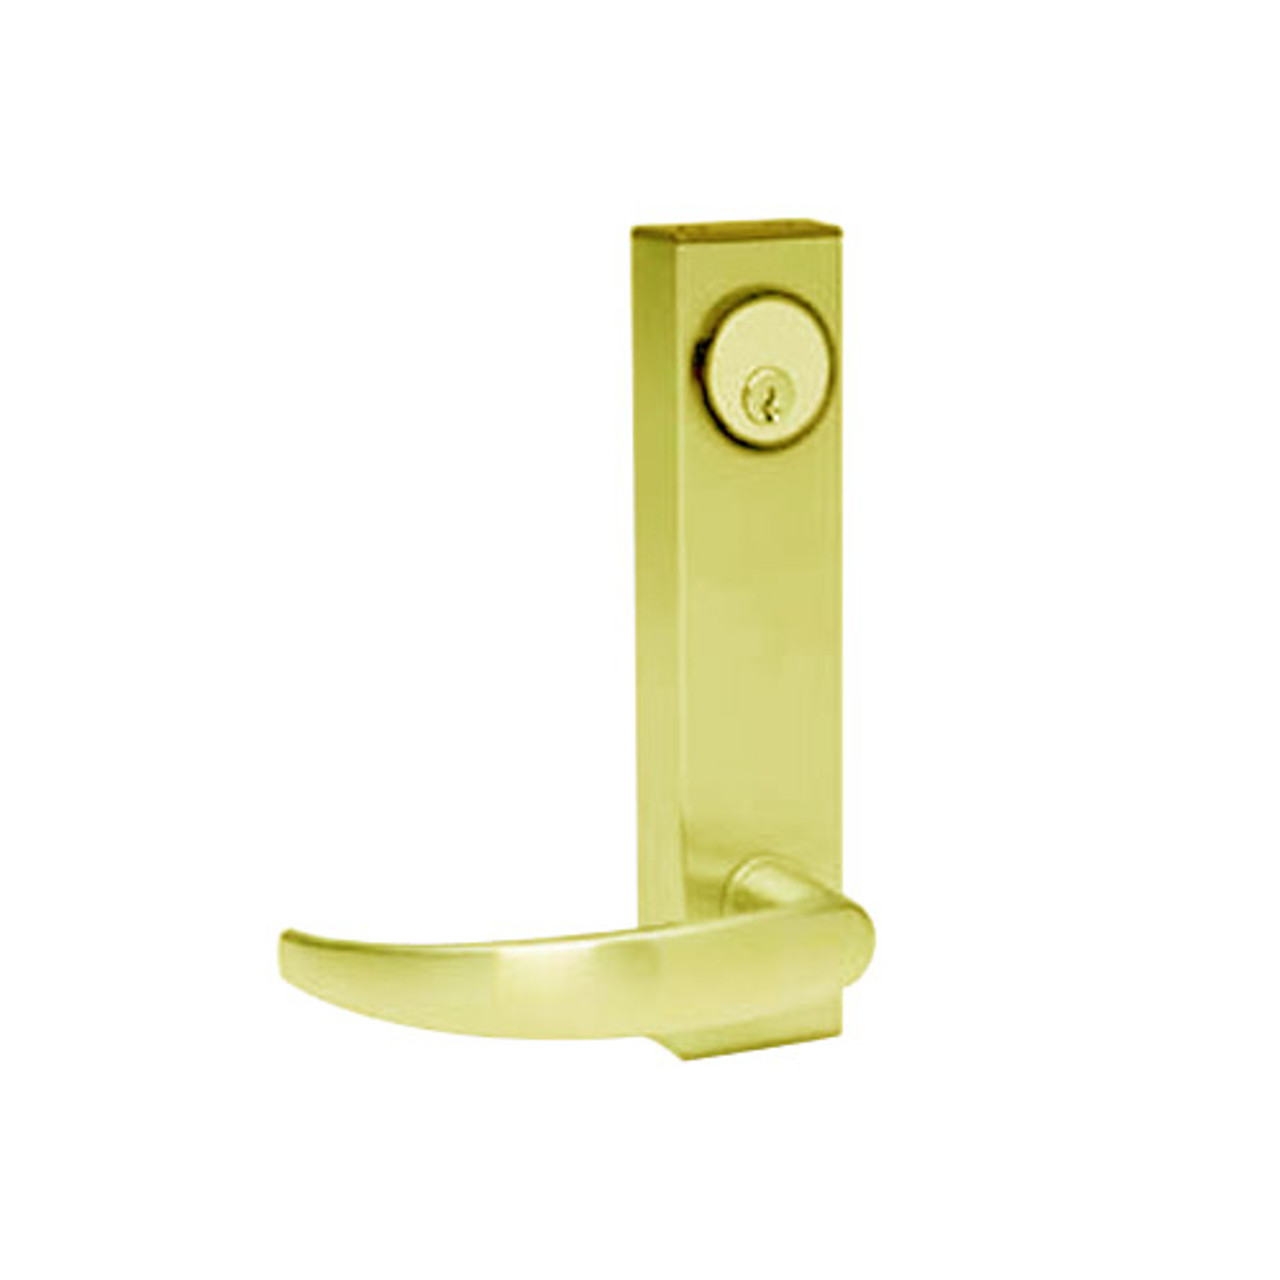 3080-01-0-34-US3 Adams Rite Standard Entry Trim with Curve Lever in Bright Brass Finish